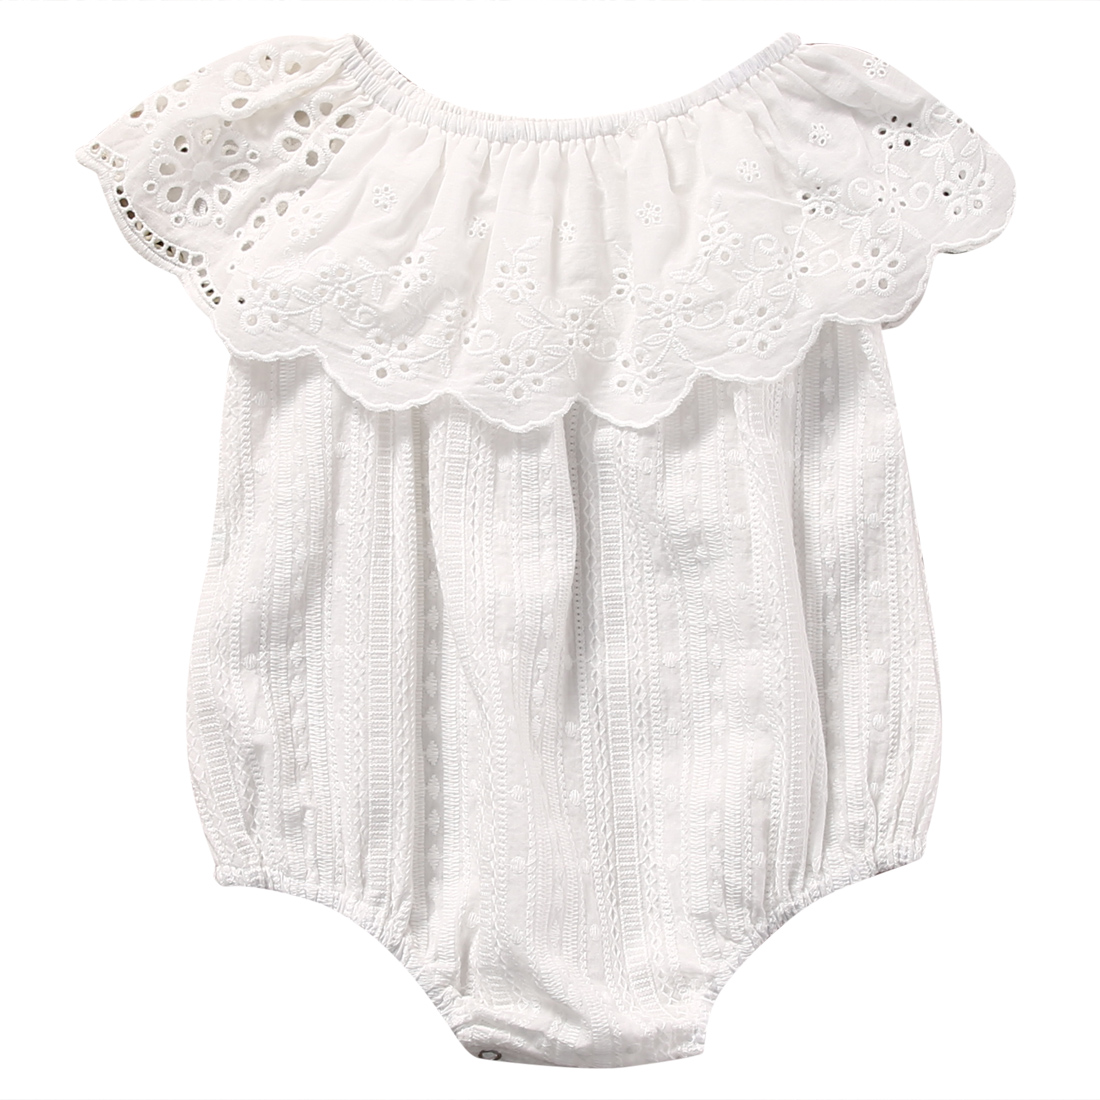 2017 Summer Newborn Baby Girl White Lace Romper Jumpsuit Floral Infant Clothes Outfit Sunsuit newborn infant baby girl clothes strap lace floral romper jumpsuit outfit summer cotton backless one pieces outfit baby onesie page 2